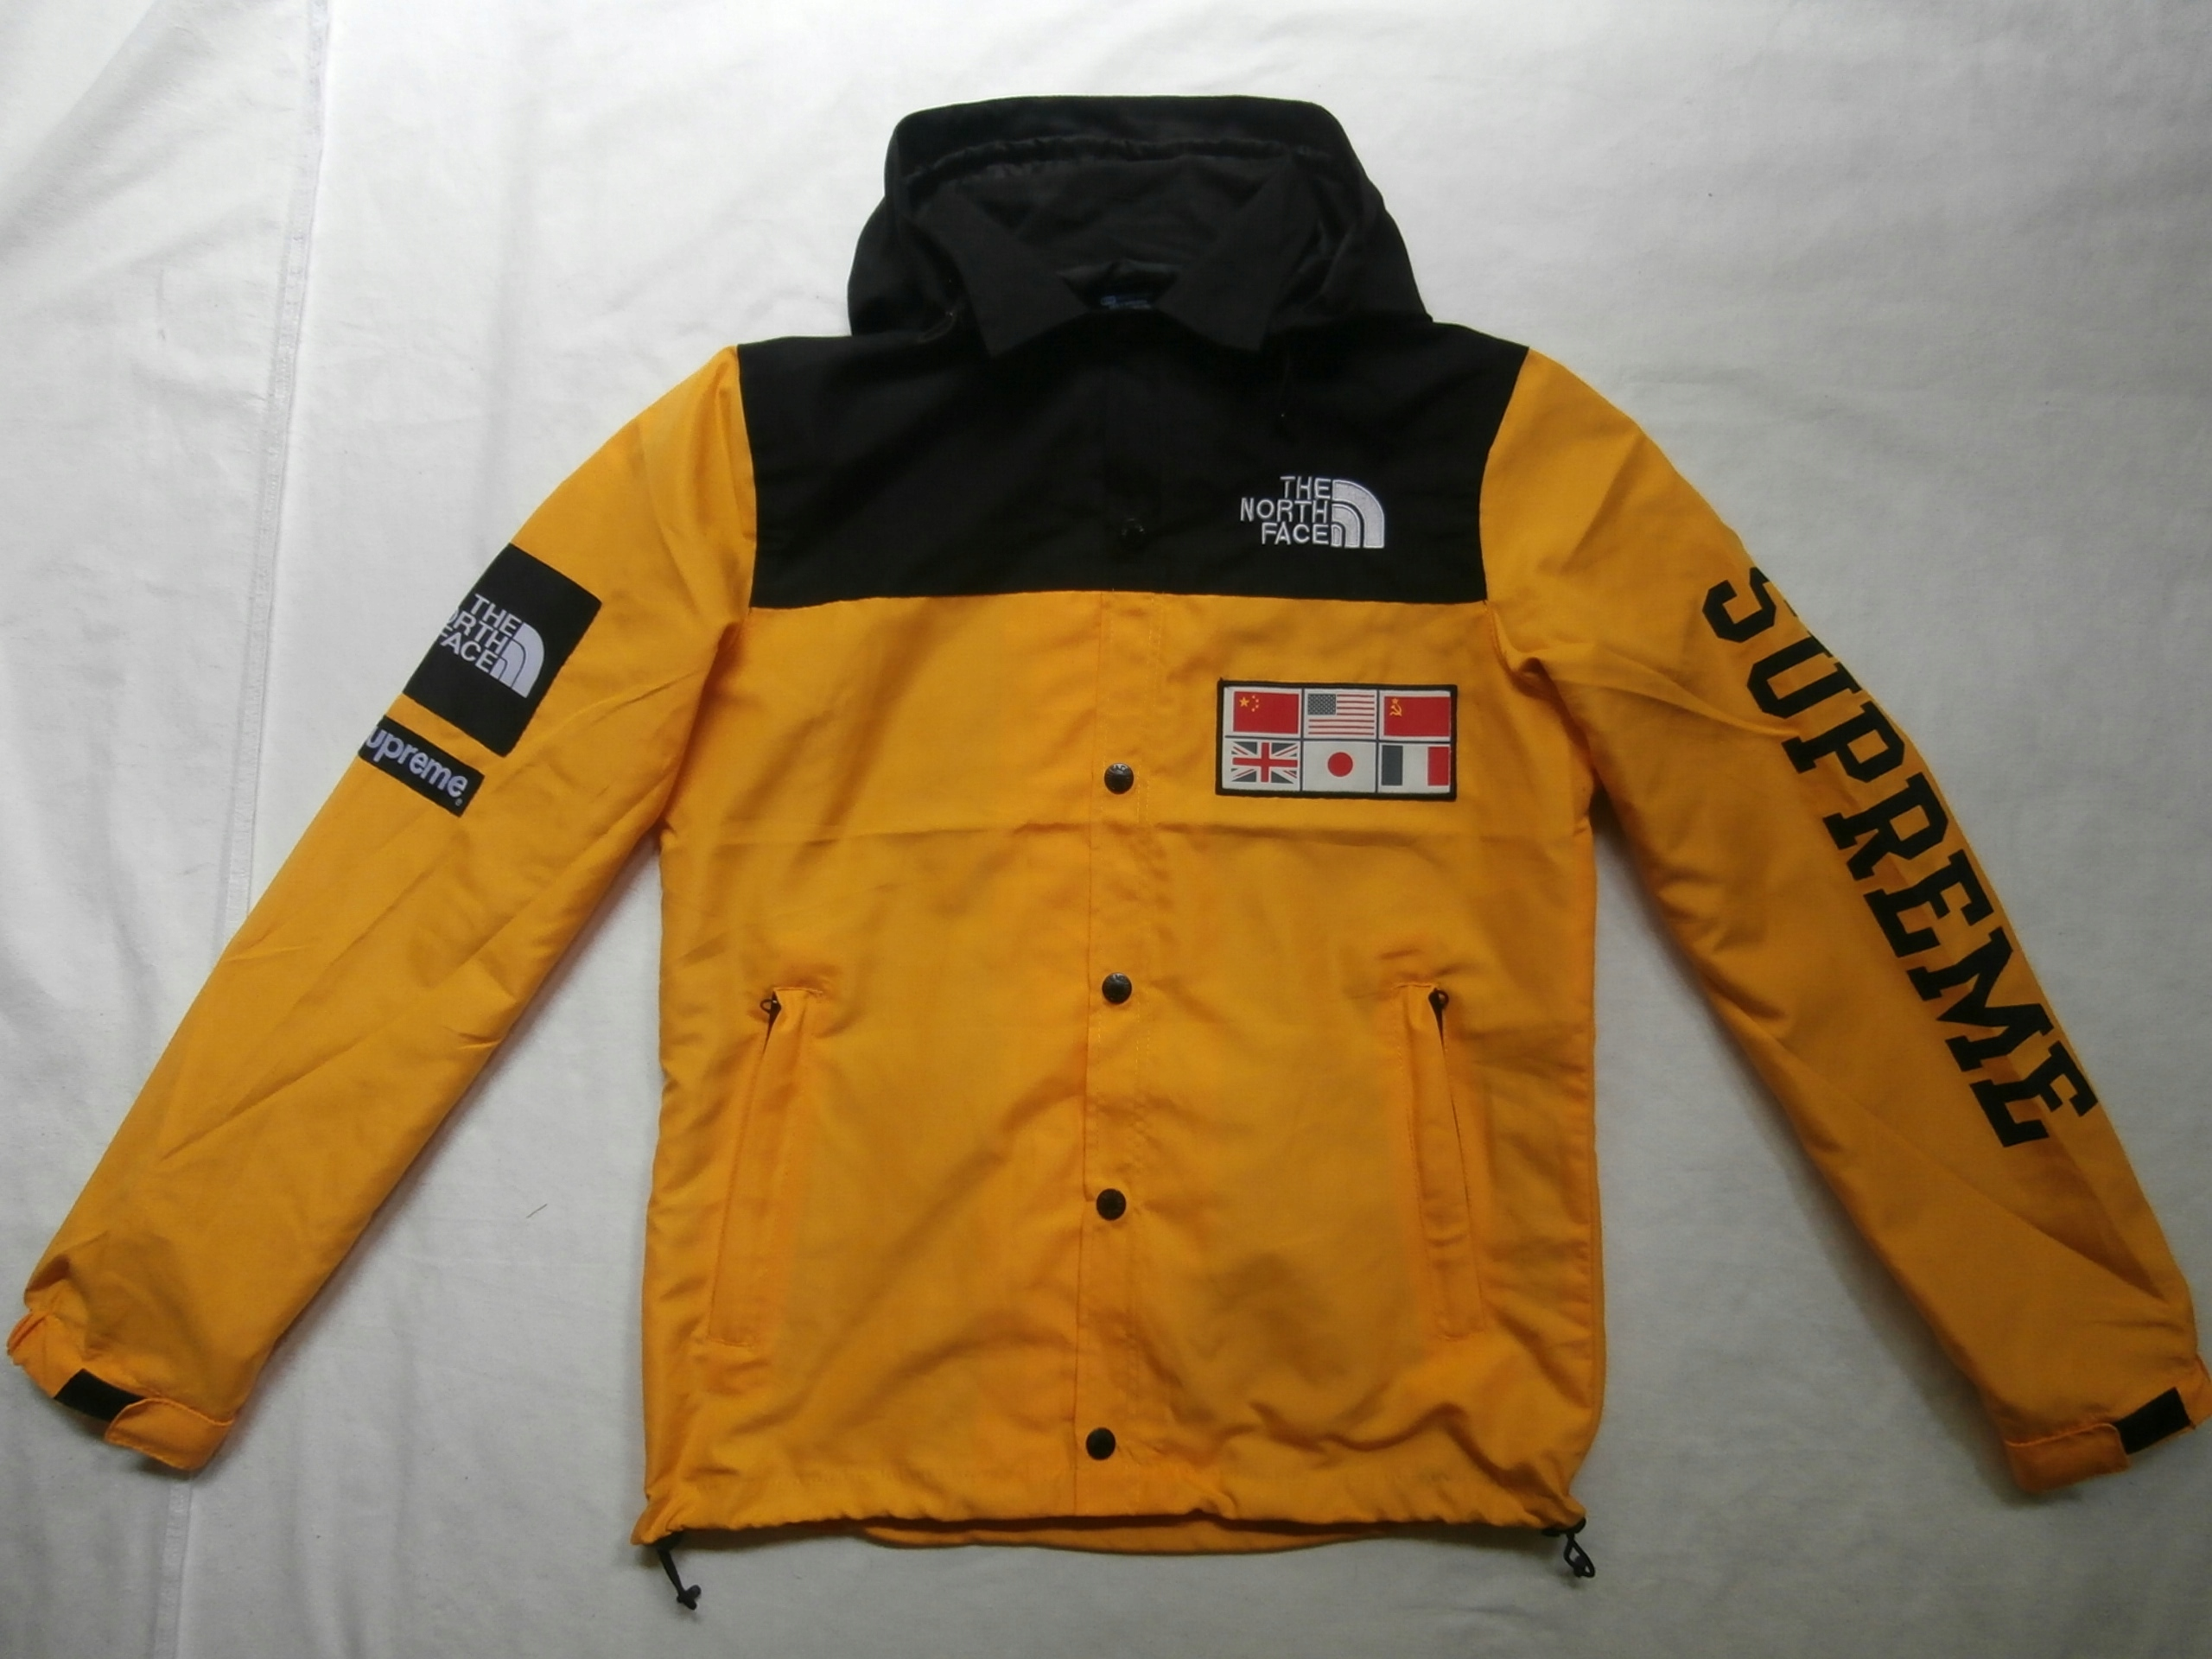 Kurtka The North Face Supreme orginal